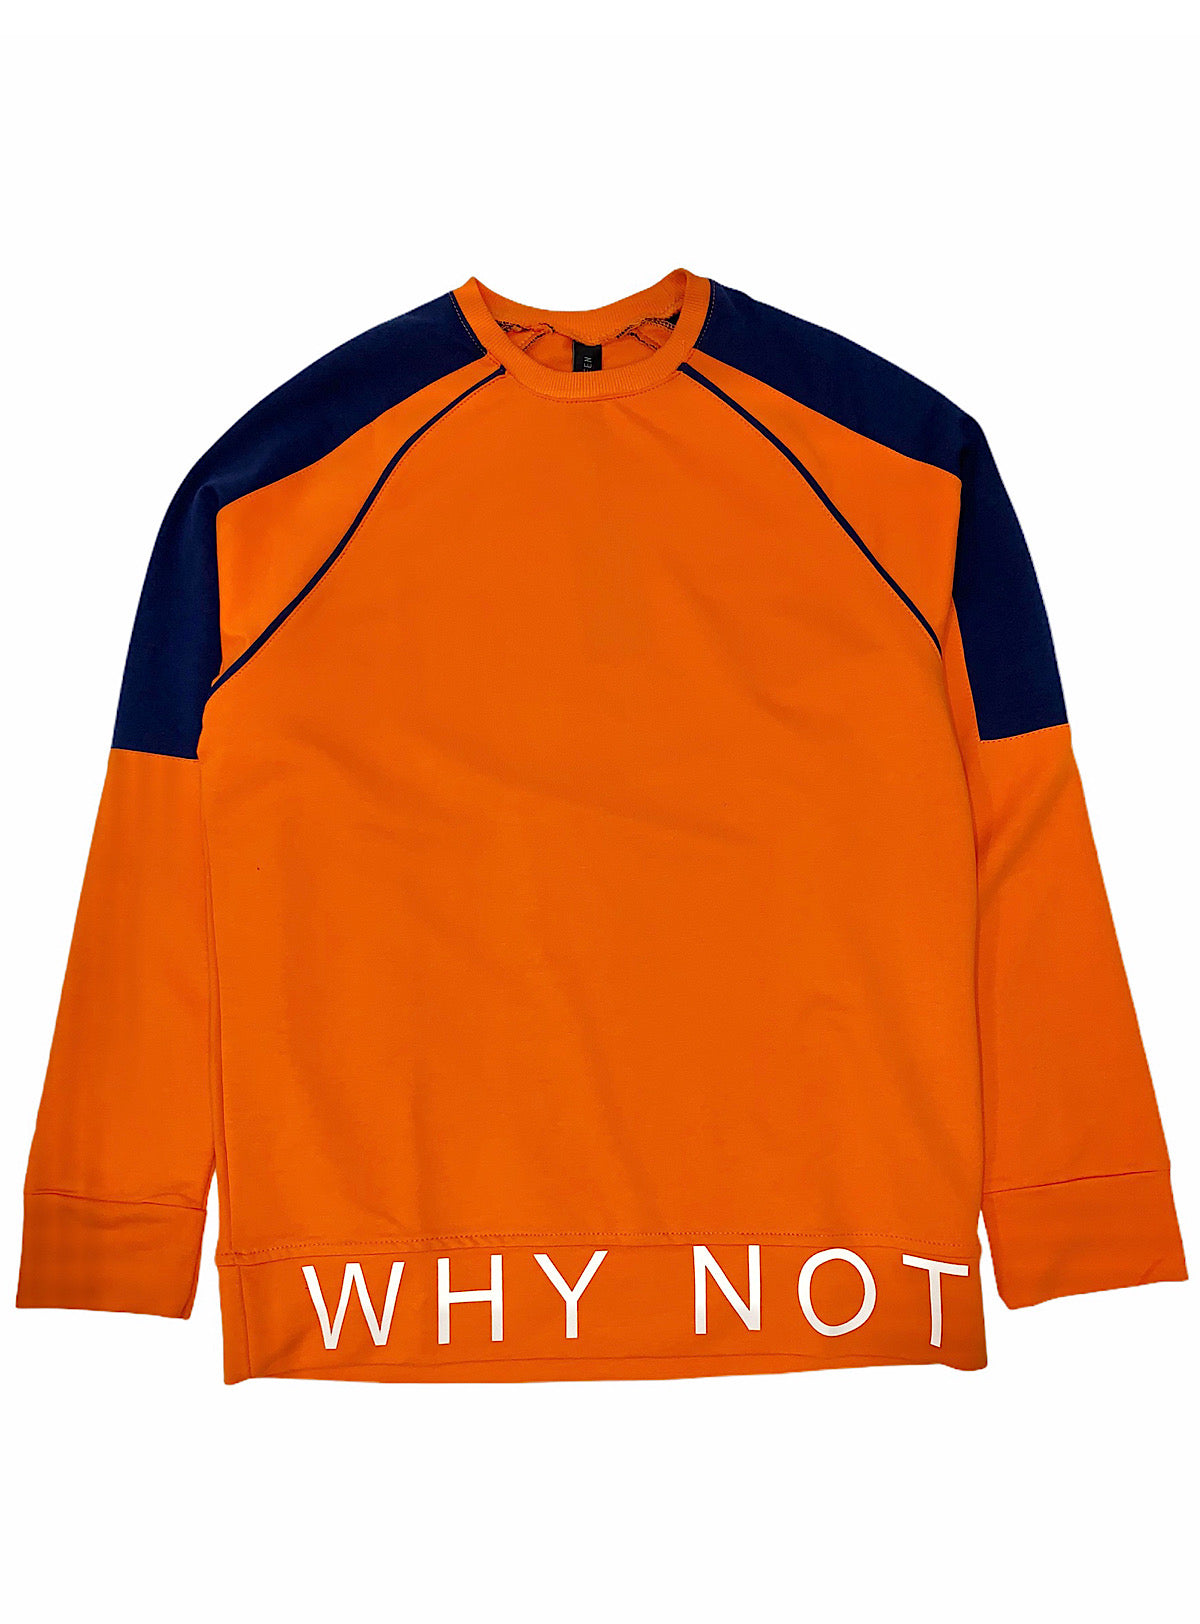 Buyer's Choice Sweatshirt - Why Not - Orange And Navy - ST-6503